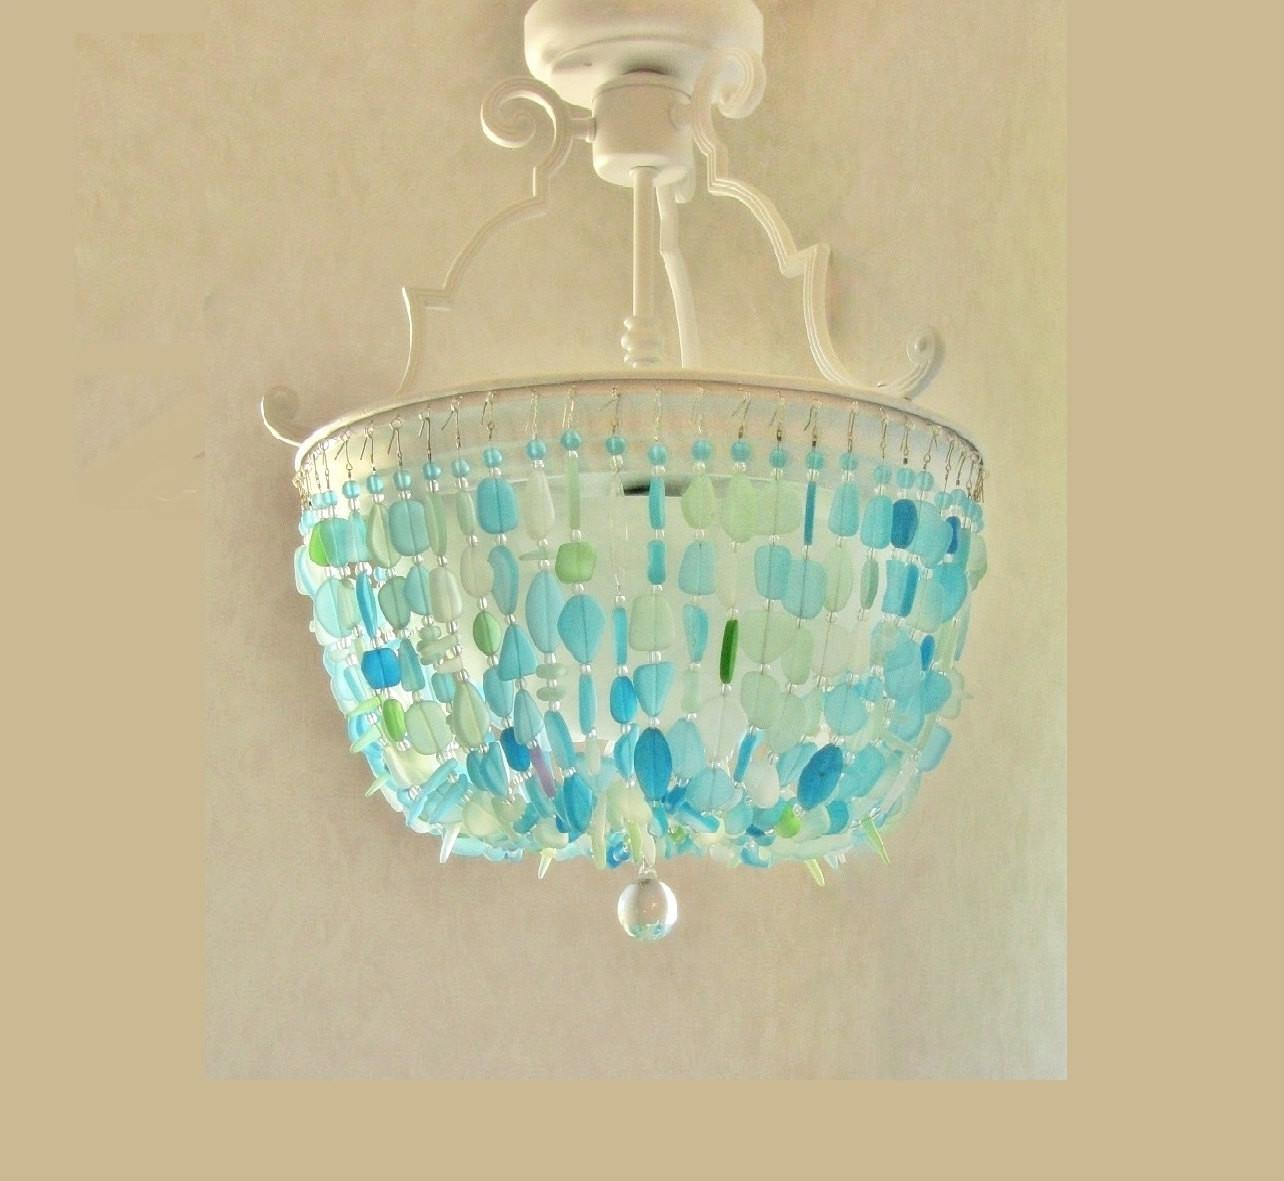 Sea Glass Chandelier Lighting Fixture Beach Ceiling